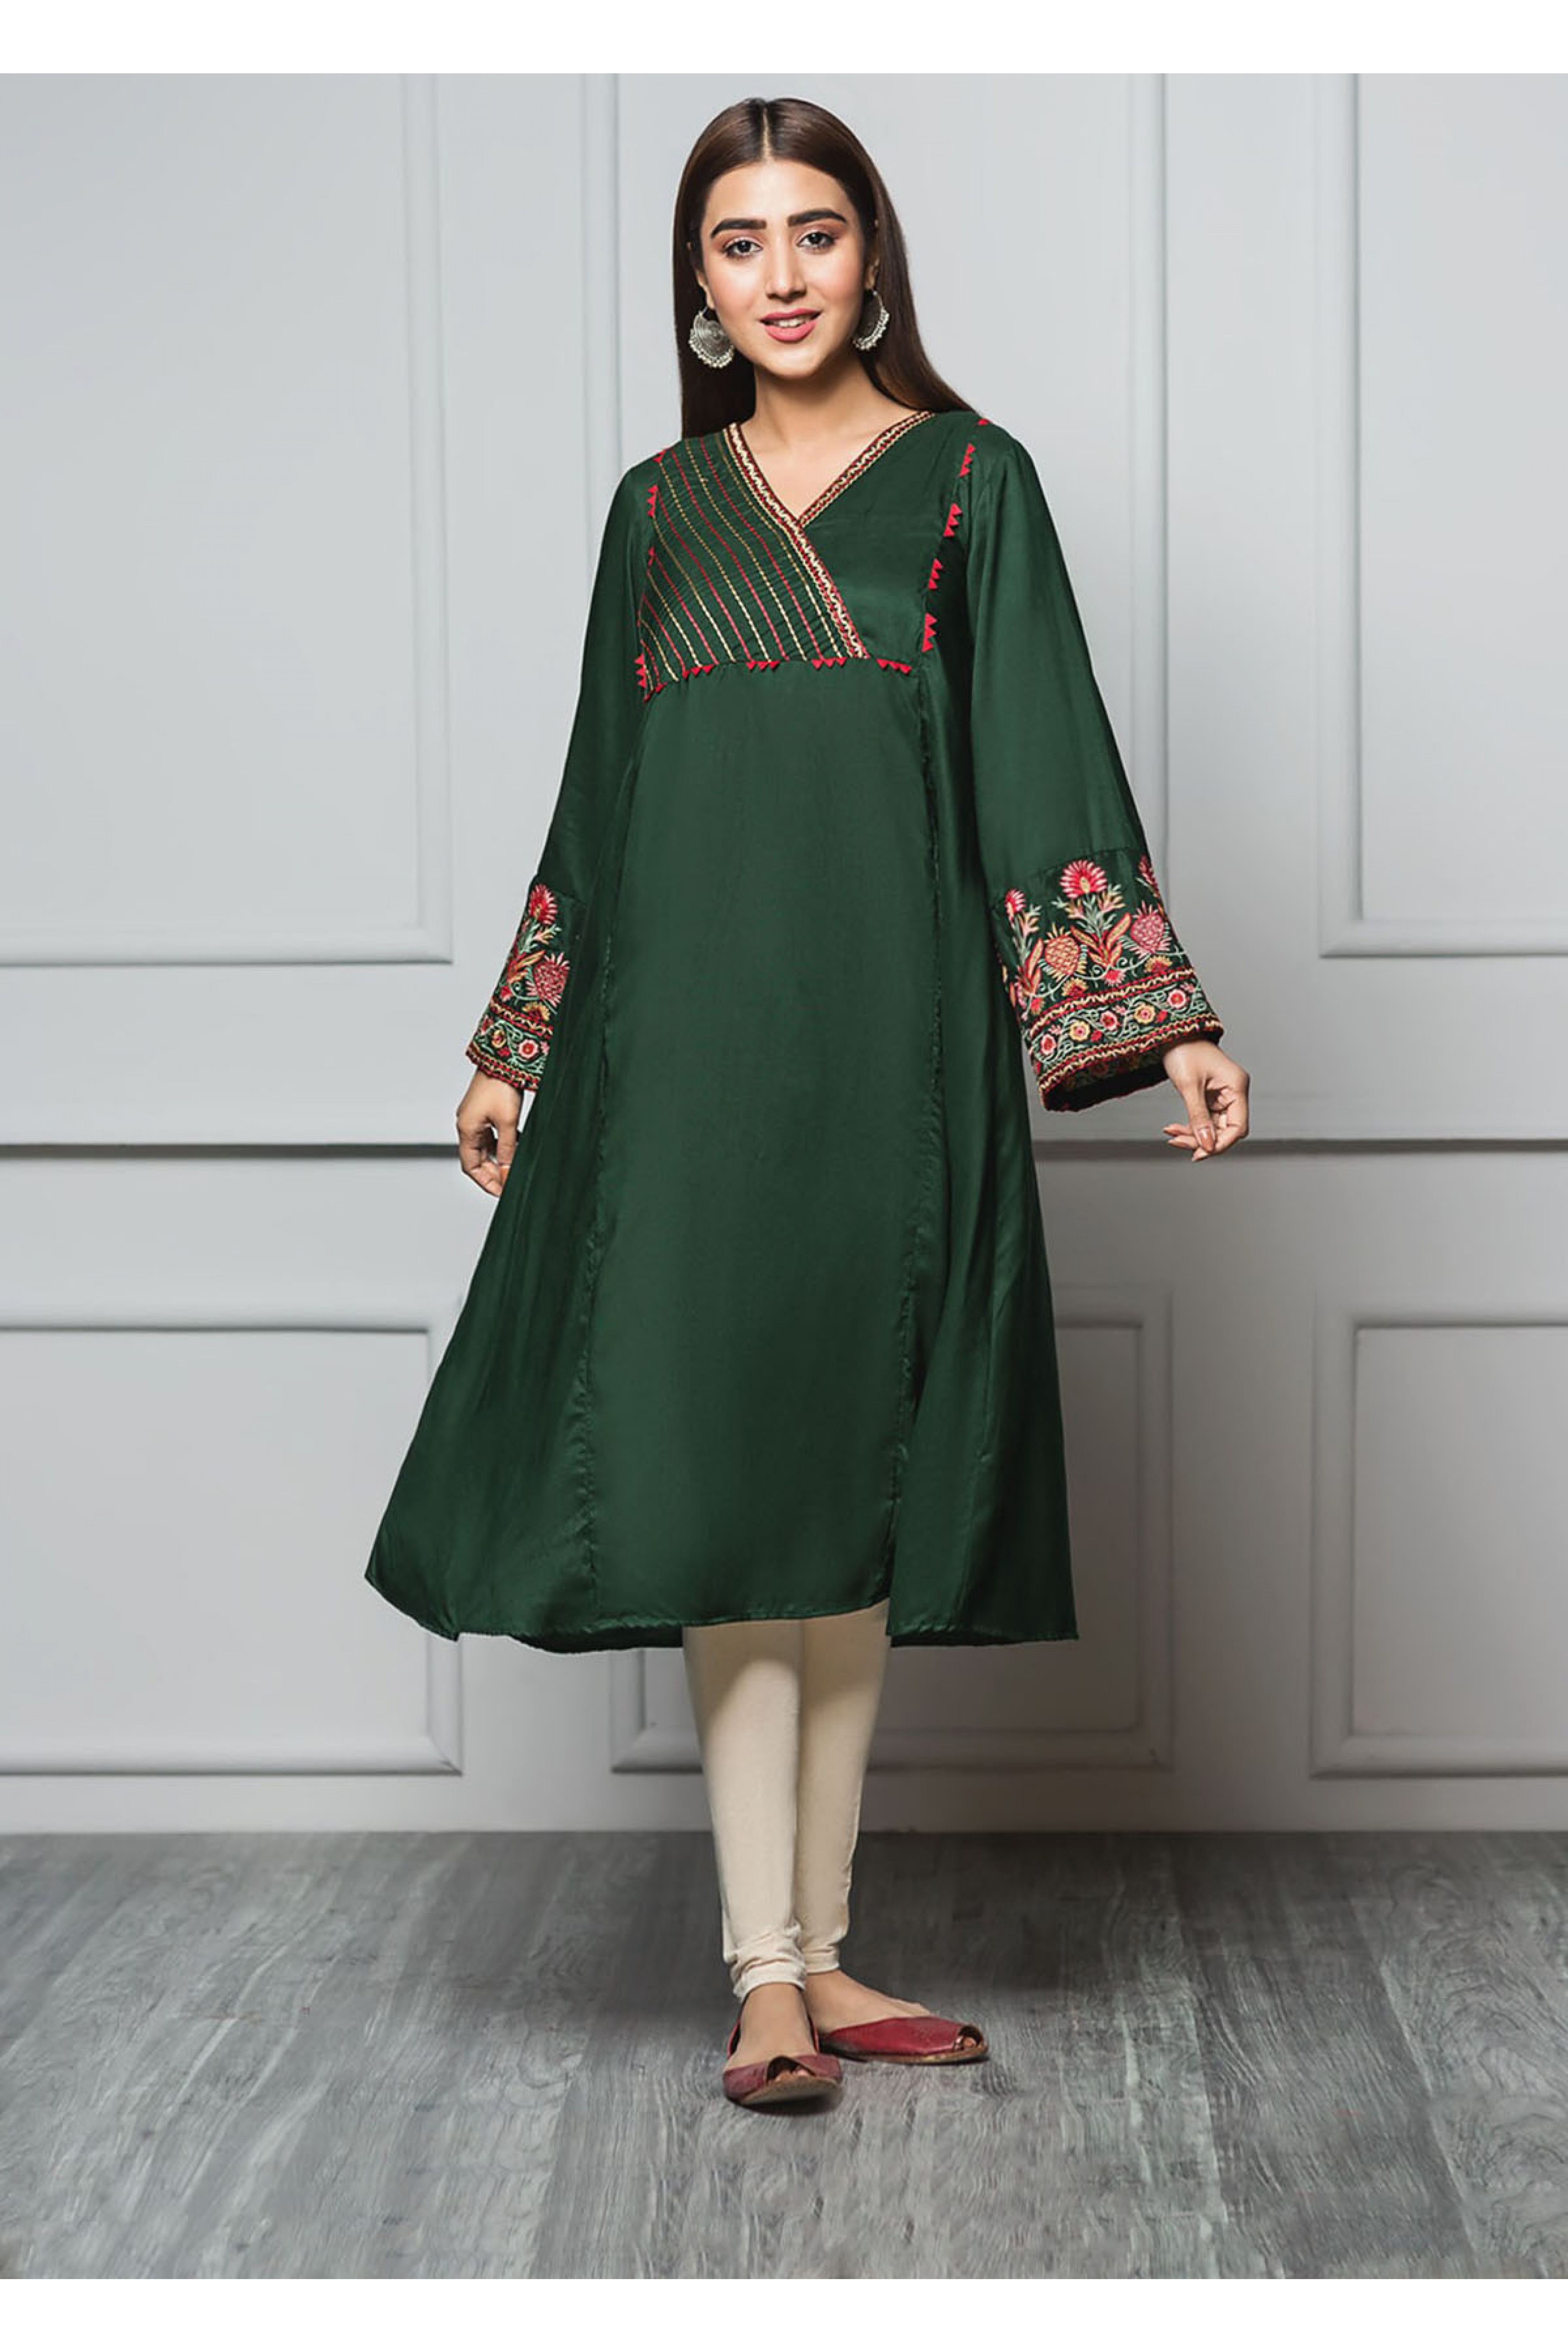 VIVID GREEN(Embroidered Frock)